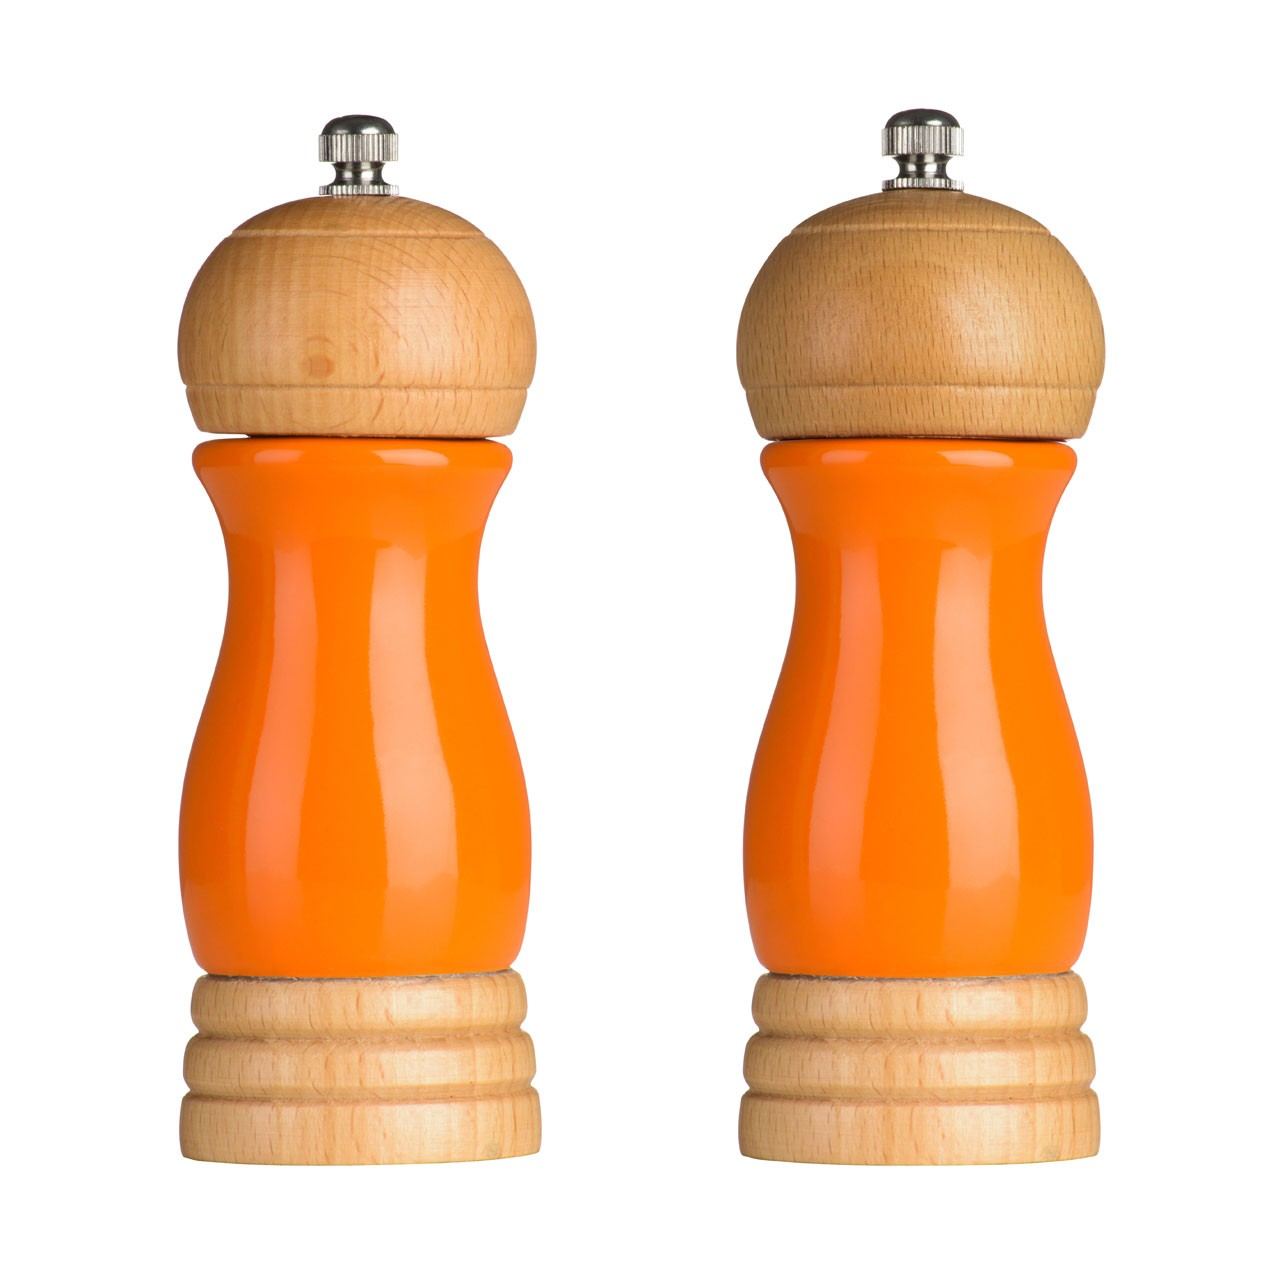 Rubberwood Salt and Pepper Mill Set - Orange